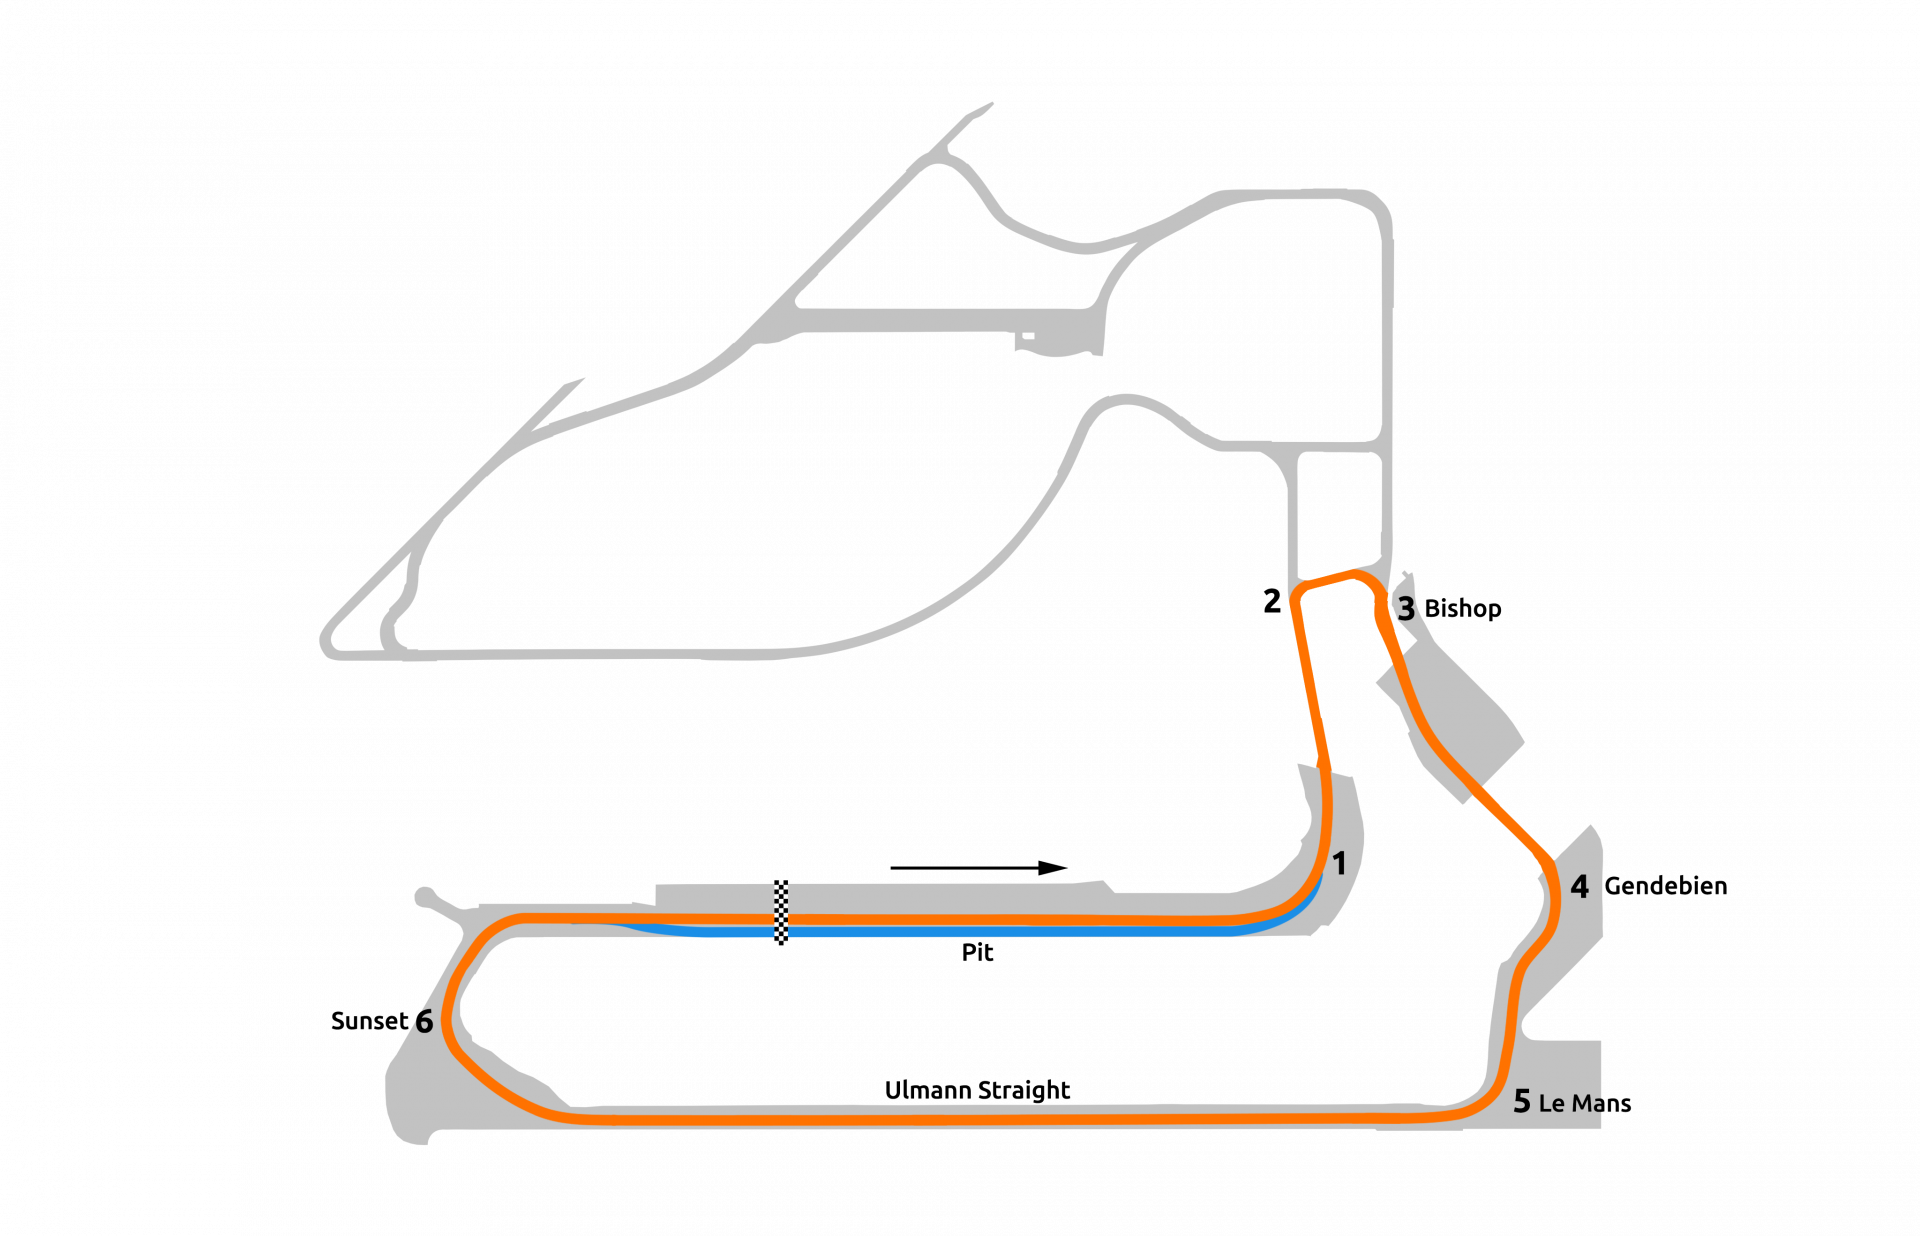 rFactor 2 July roadmap Sebring School Layout